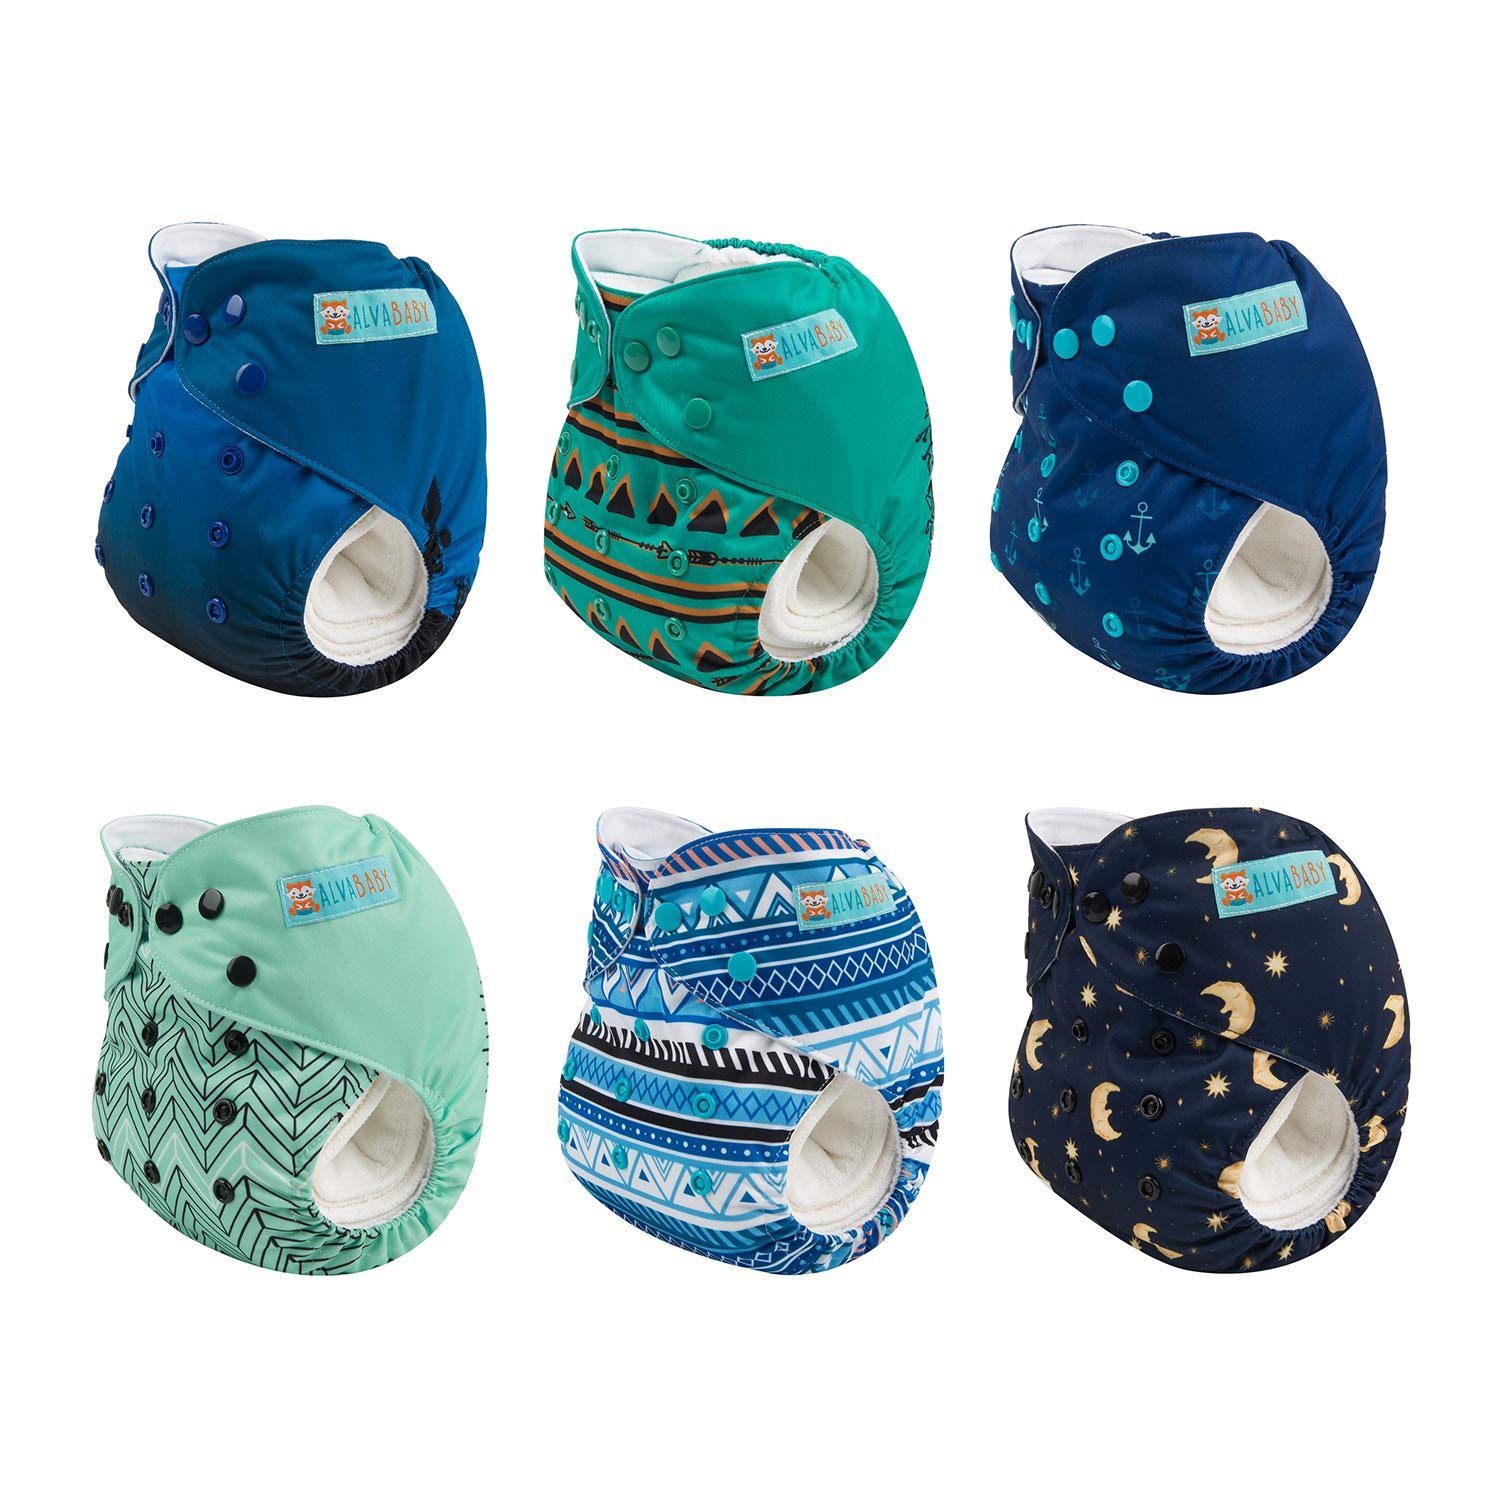 ALVABABY Color Snaps Baby Cloth Diapers/Adjustable Washable Reusable/6 Pack with 12 pcs 5-Layer Charcoal Bamboo Inserts 6CM64-ZTN by ALVA (Image #4)